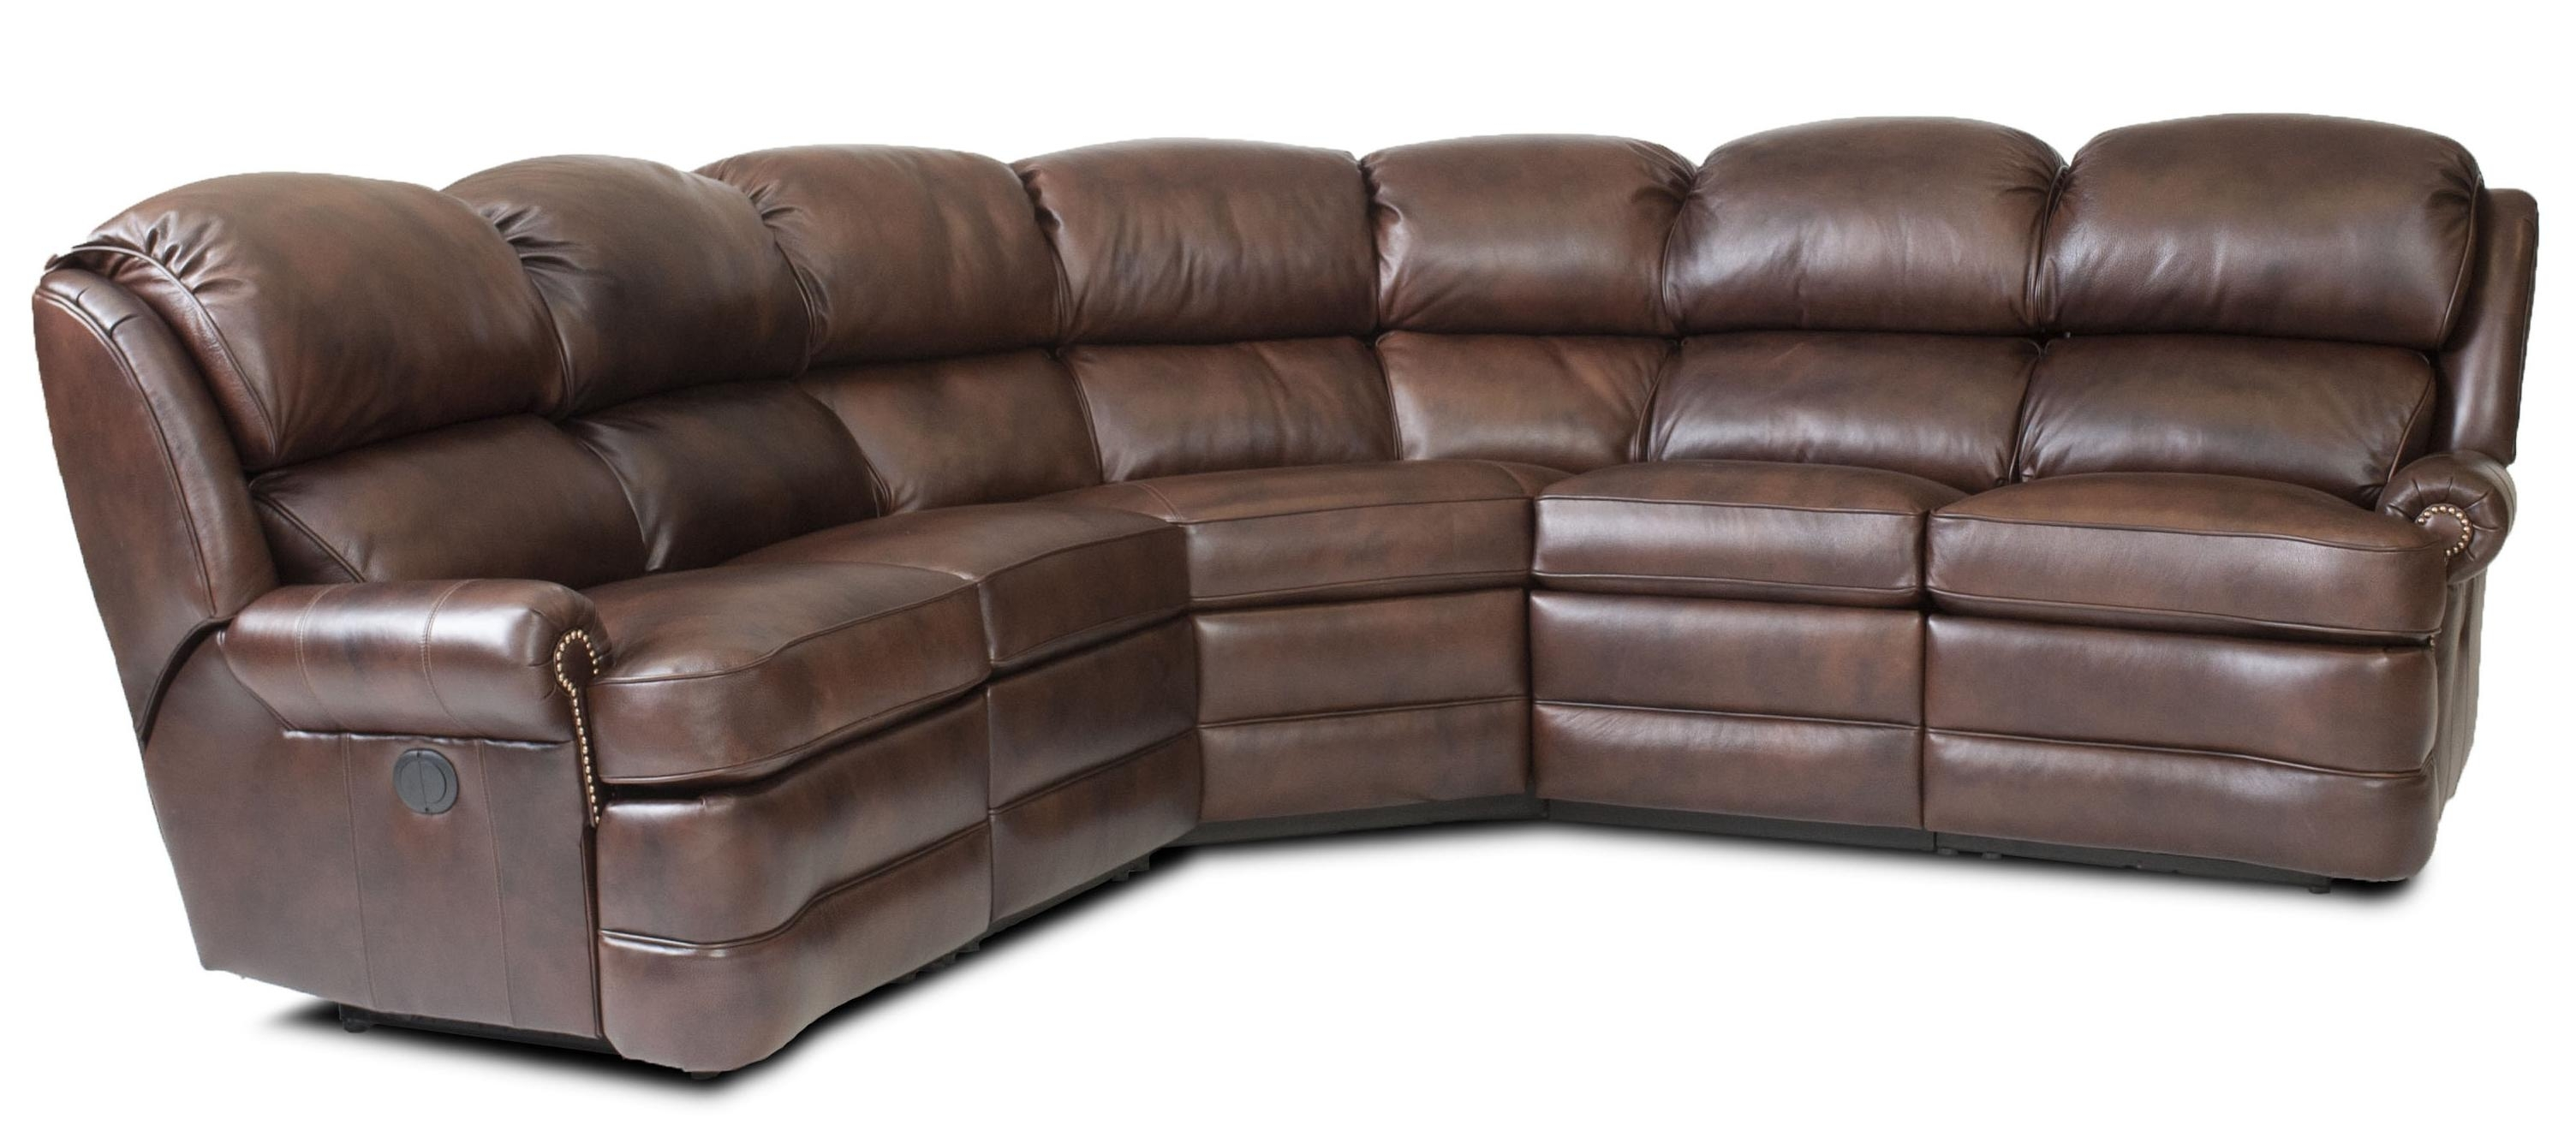 Famous Sectional Sofas Under 900 Regarding Transitional 5 Piece Reclining Sectional Sofa With Small Rolled (View 3 of 20)